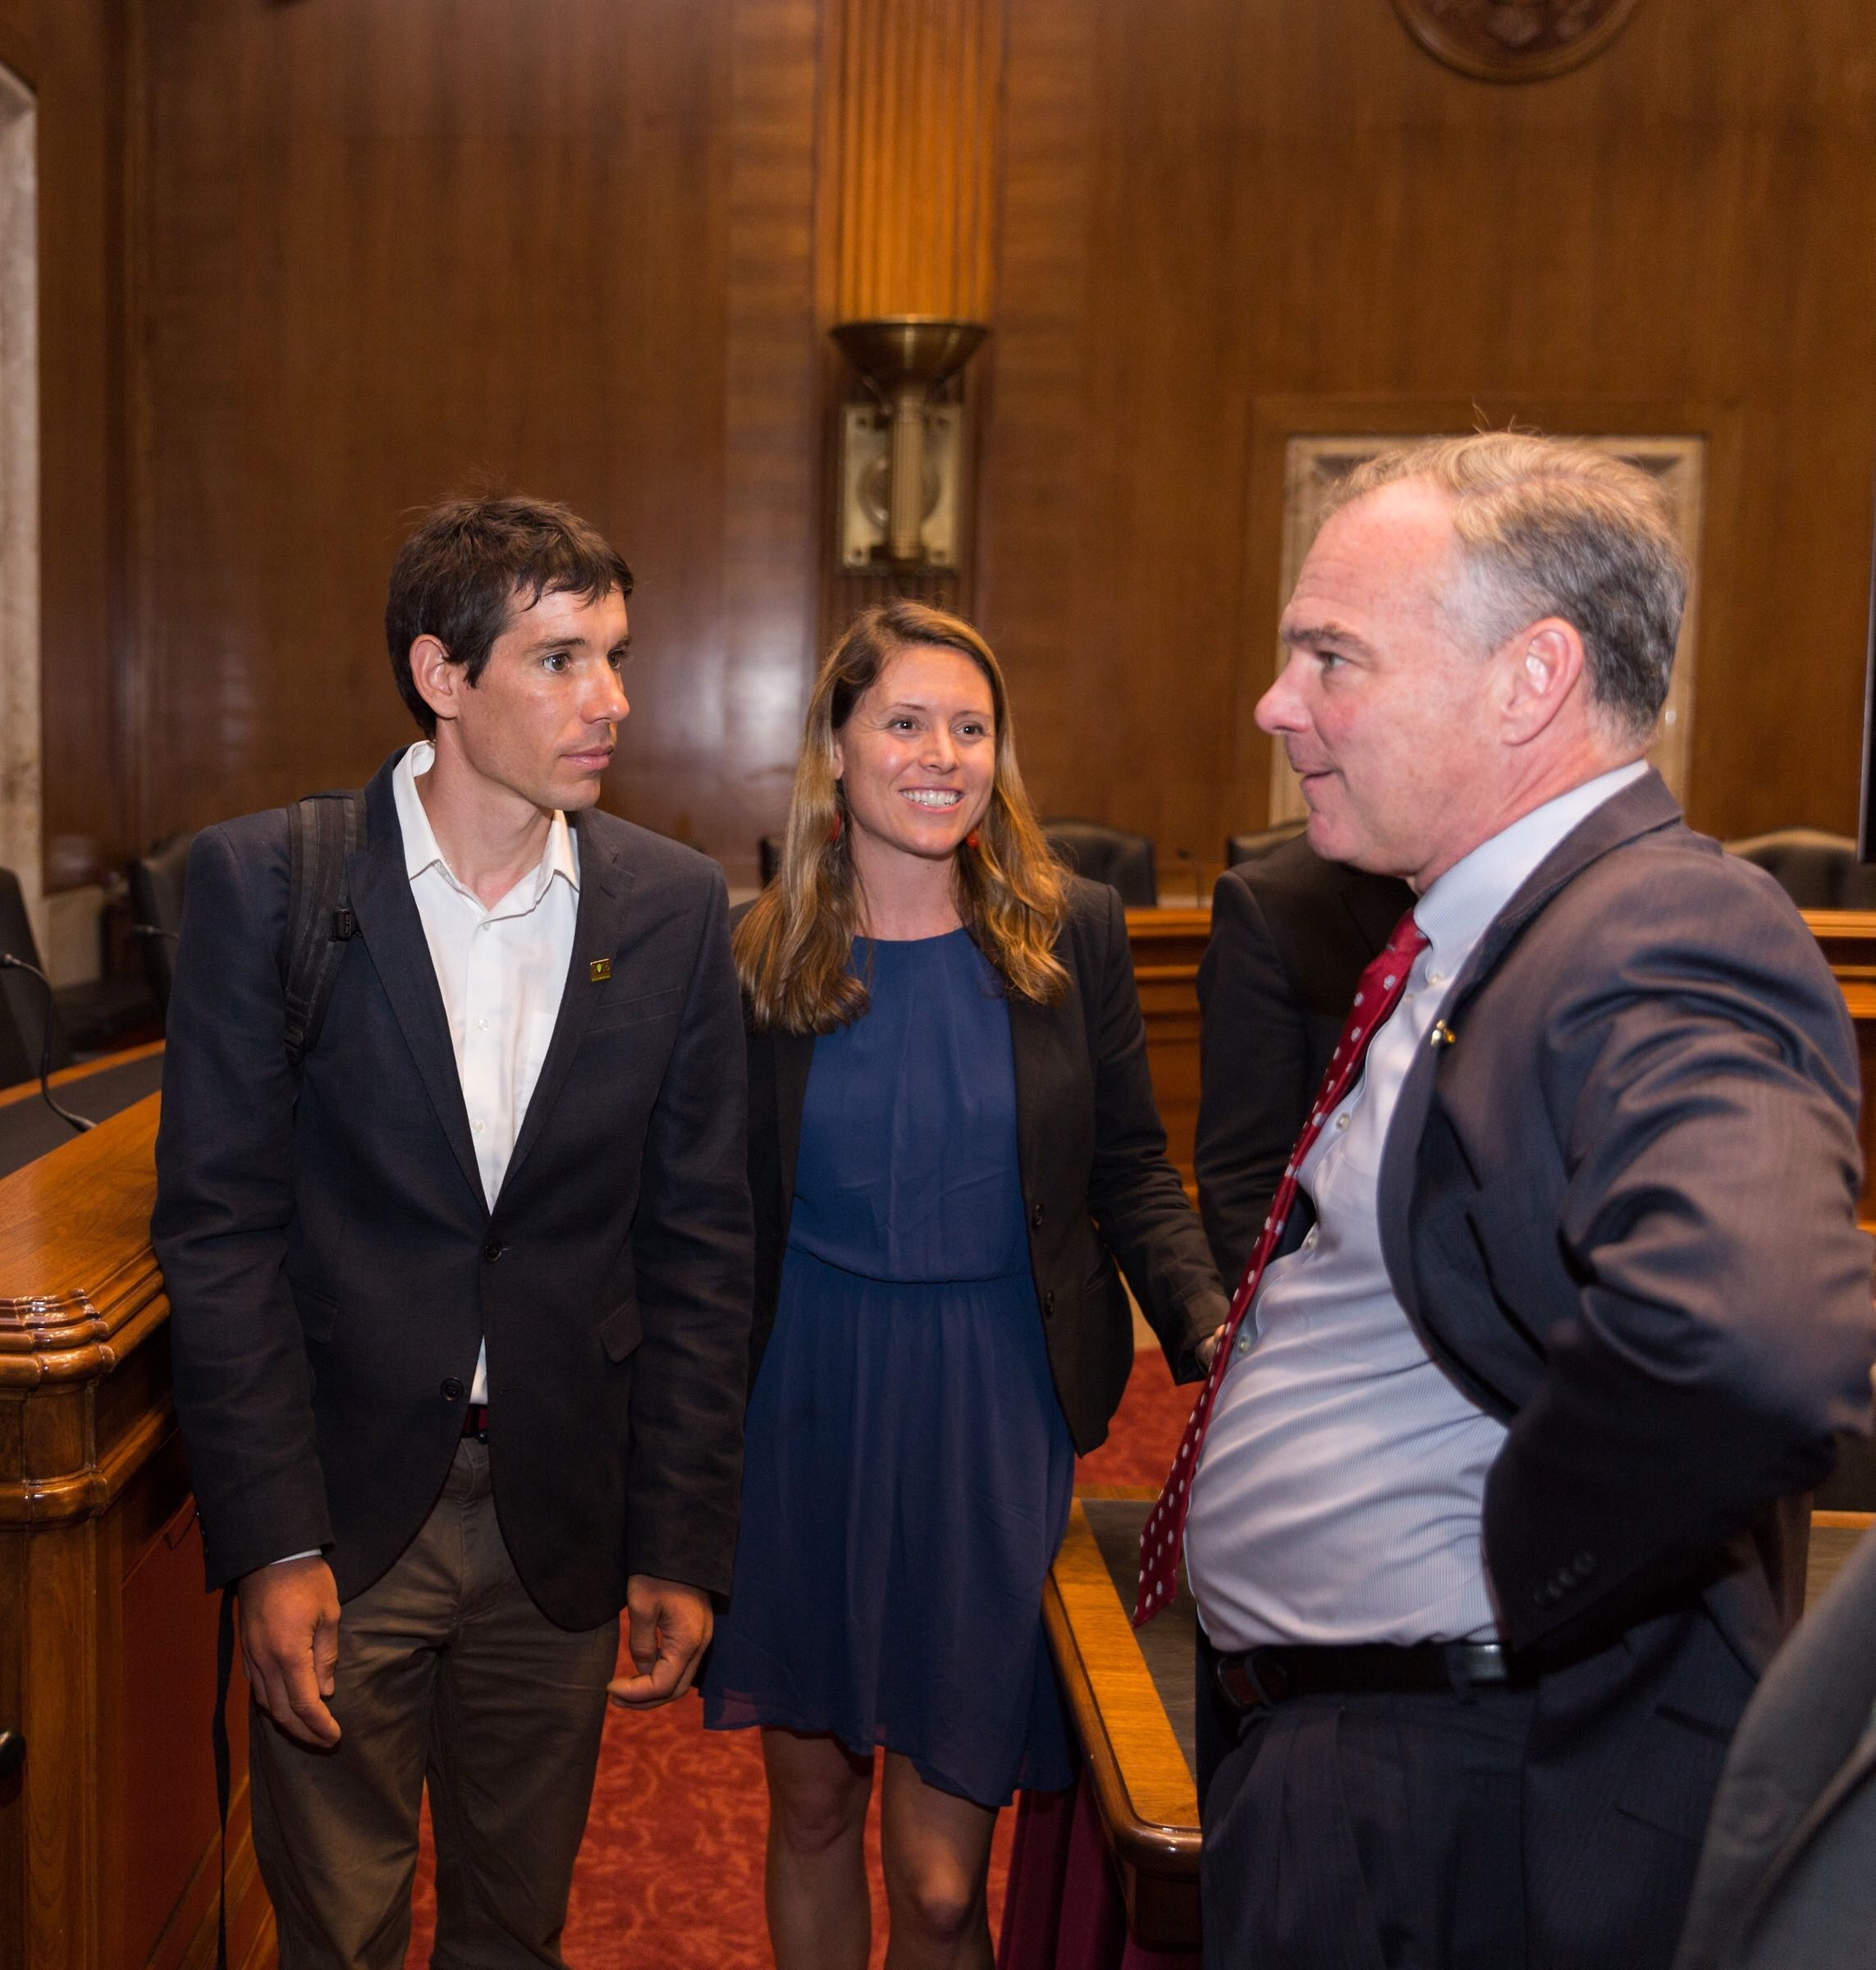 Maria Povec, American Alpine Club Policy & Programs Director, meeting with Alex Honnold and Tim Kaine during the congressional briefing at the annual Climb the Hill event in Washington, DC.